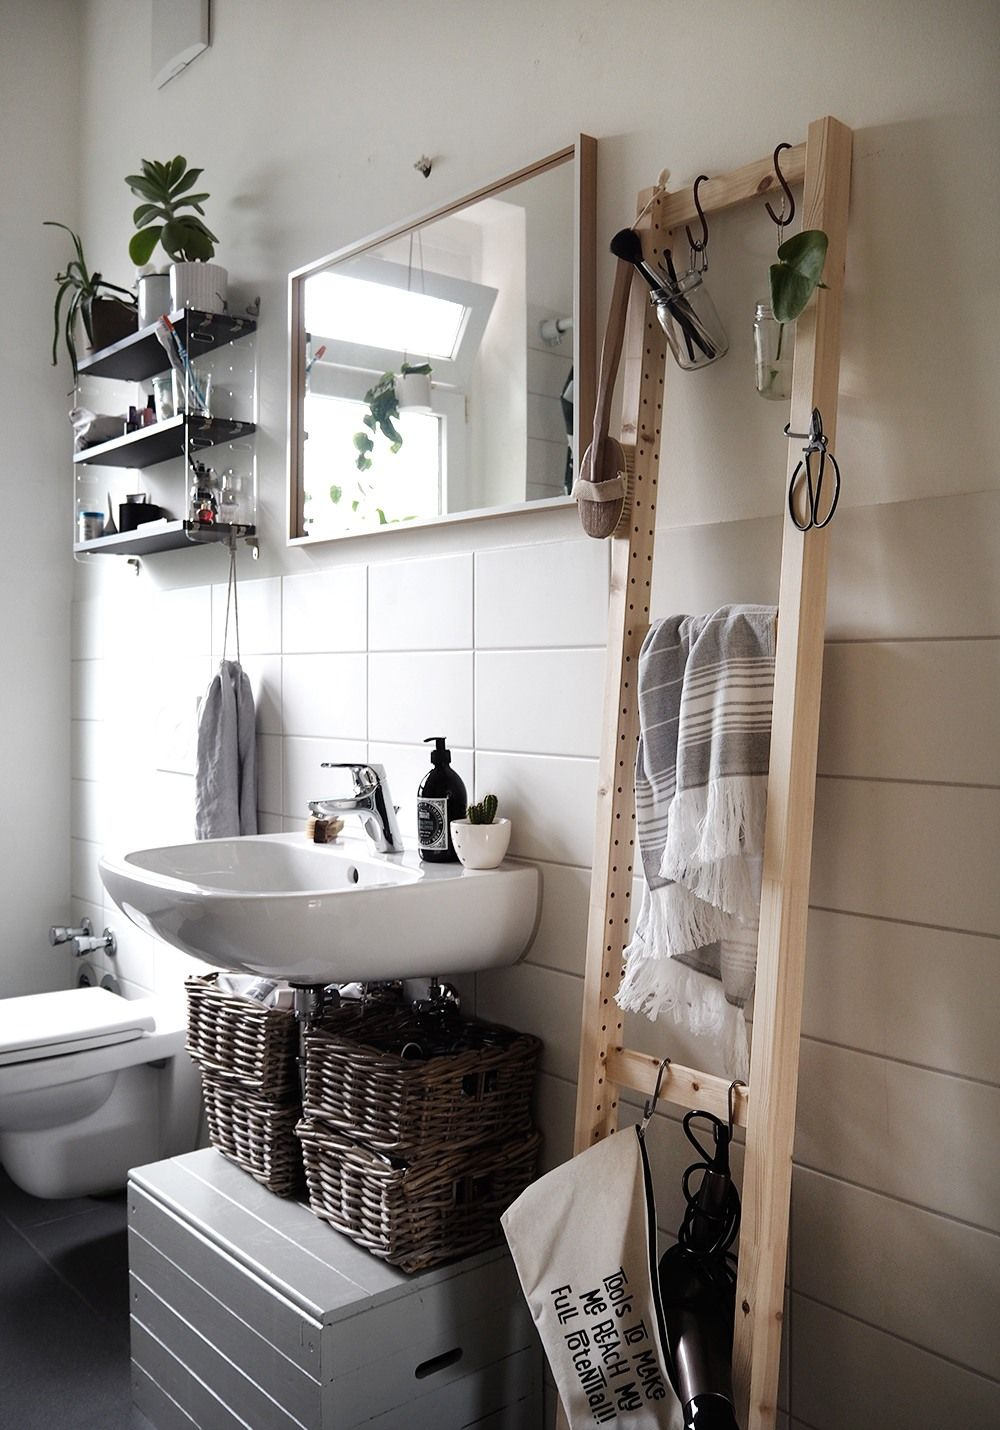 10 Ikea Hacks That Were Made For Small Bathrooms Tiny Bathroom Storage Small Bathroom Diy Small Bathroom Storage